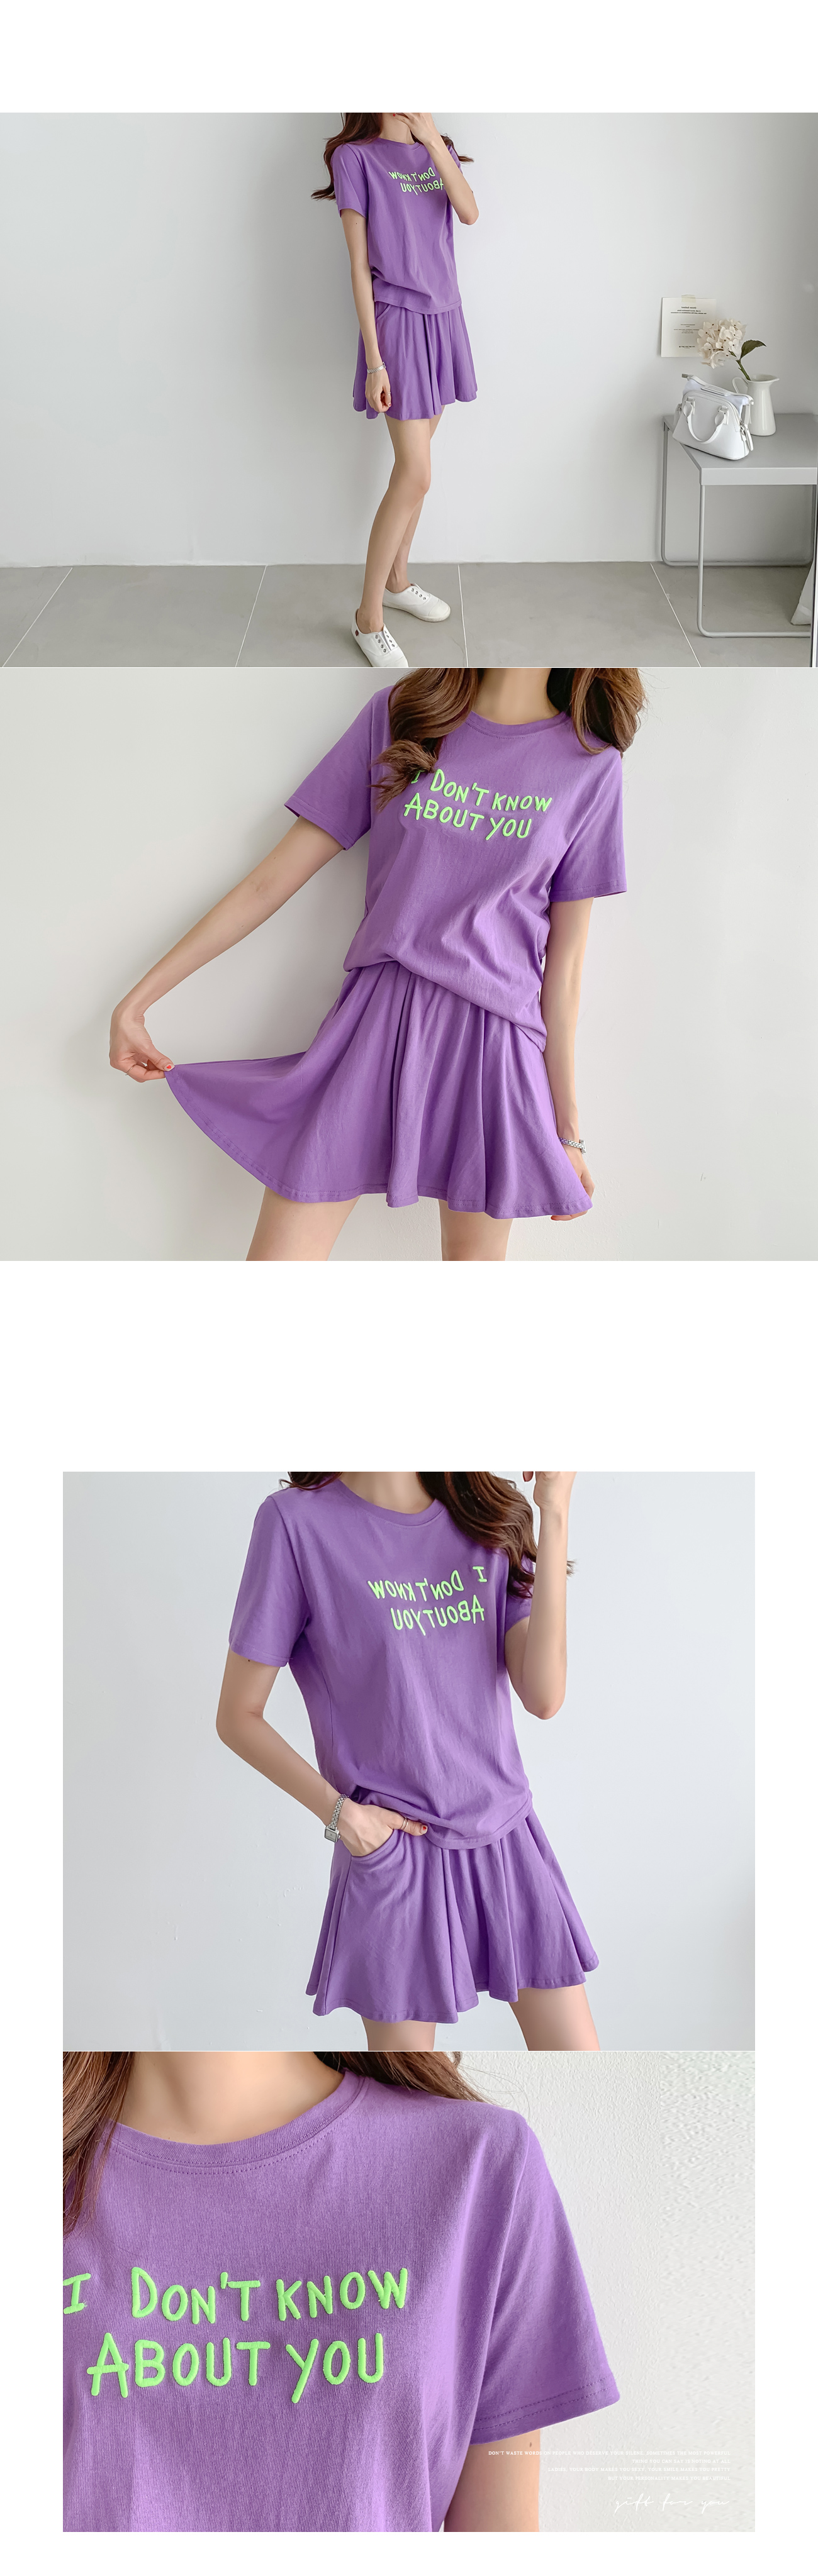 About You Short Sleeve Skirt Set #92415